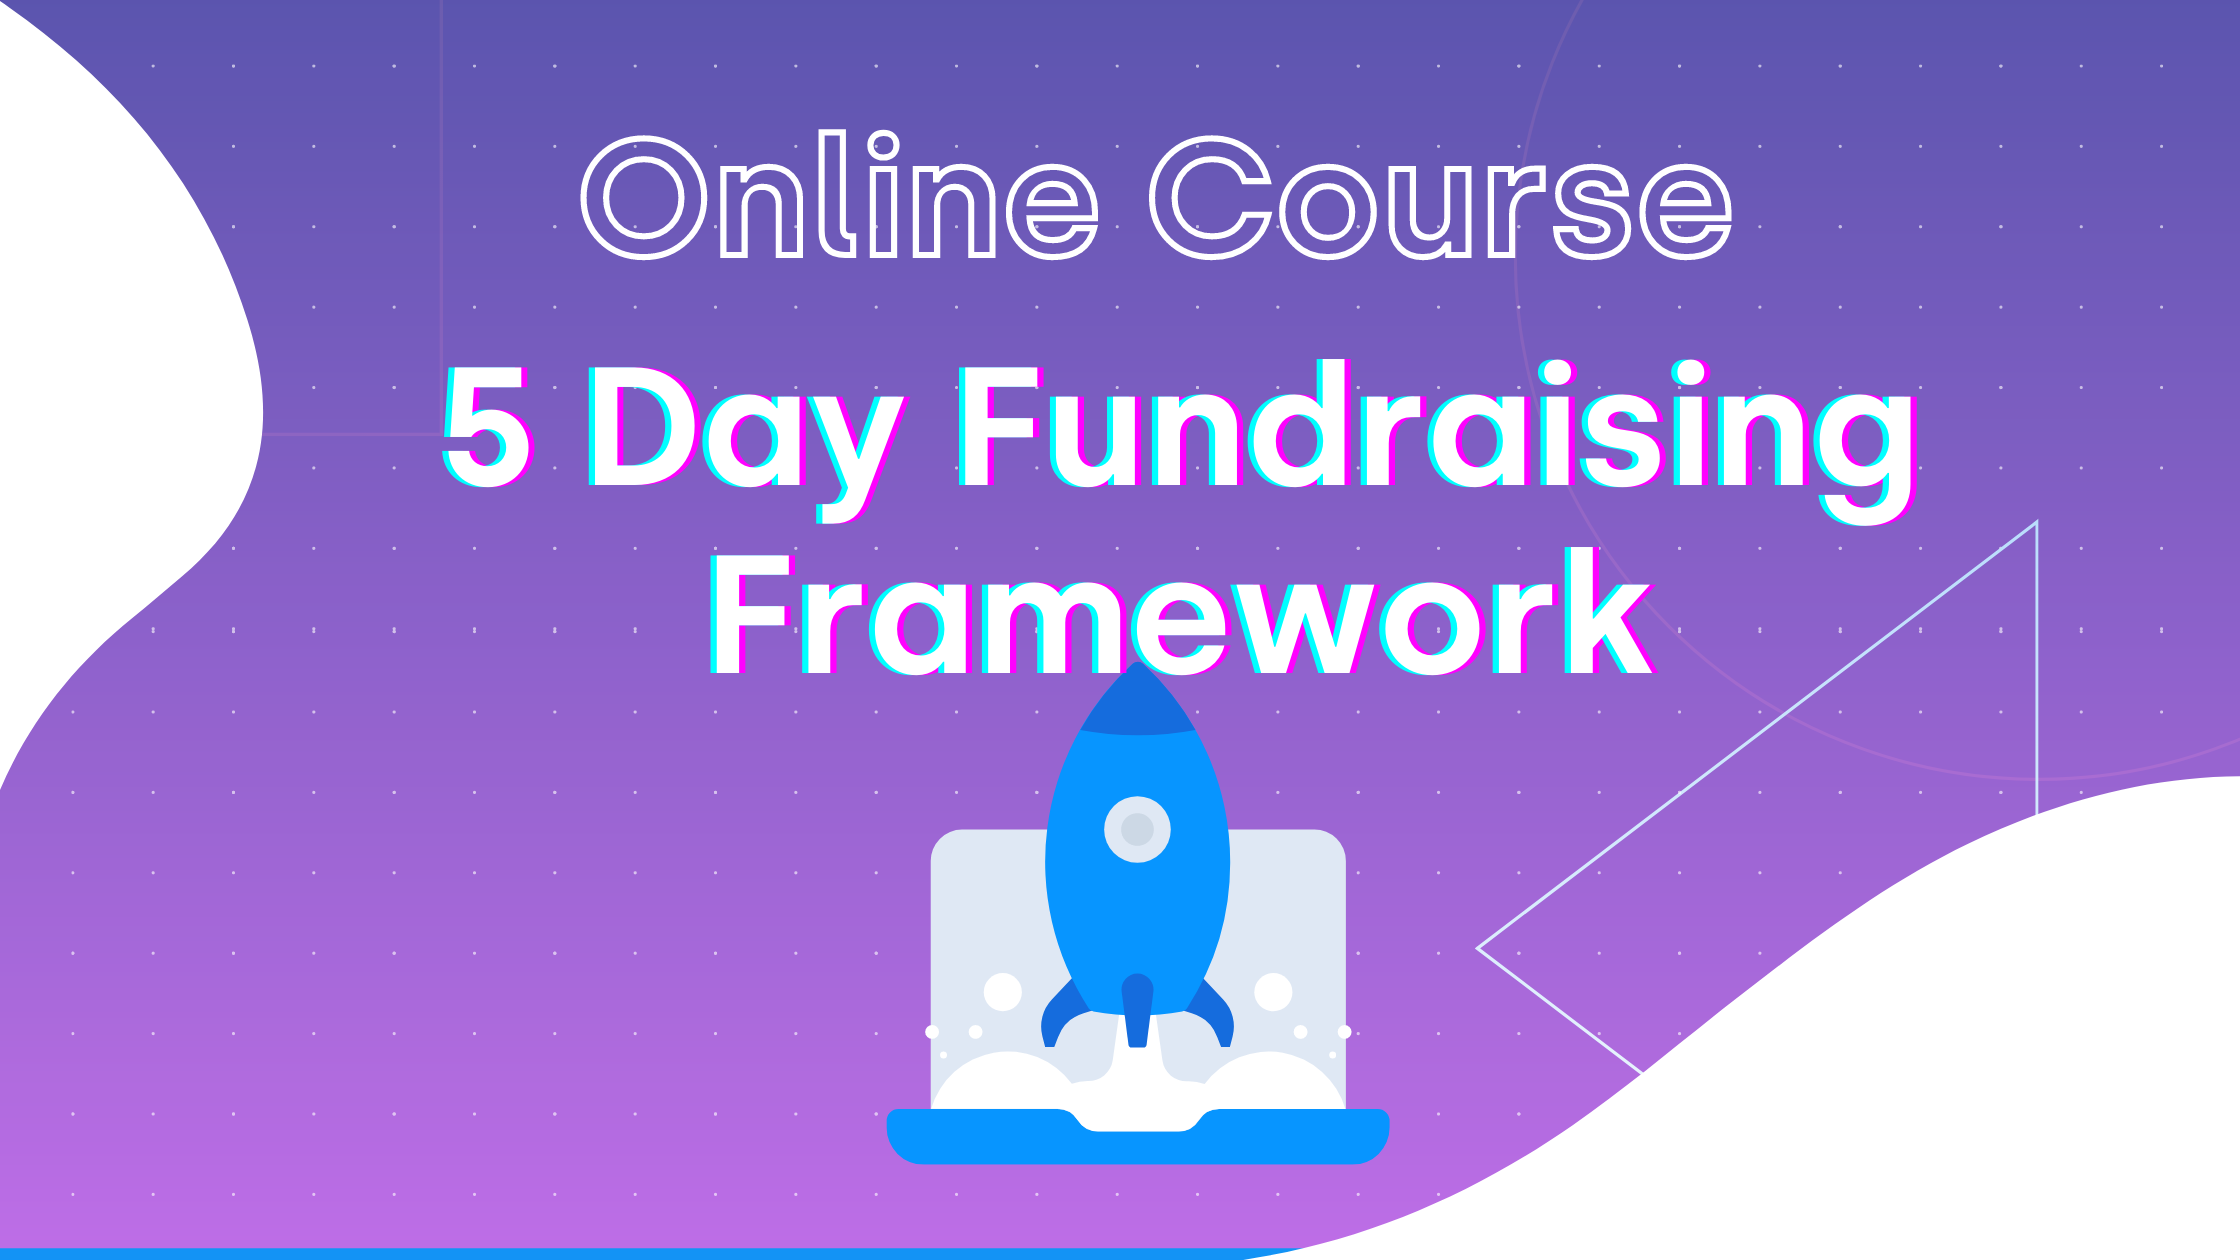 Free Fundraising Basics Course | Online Course